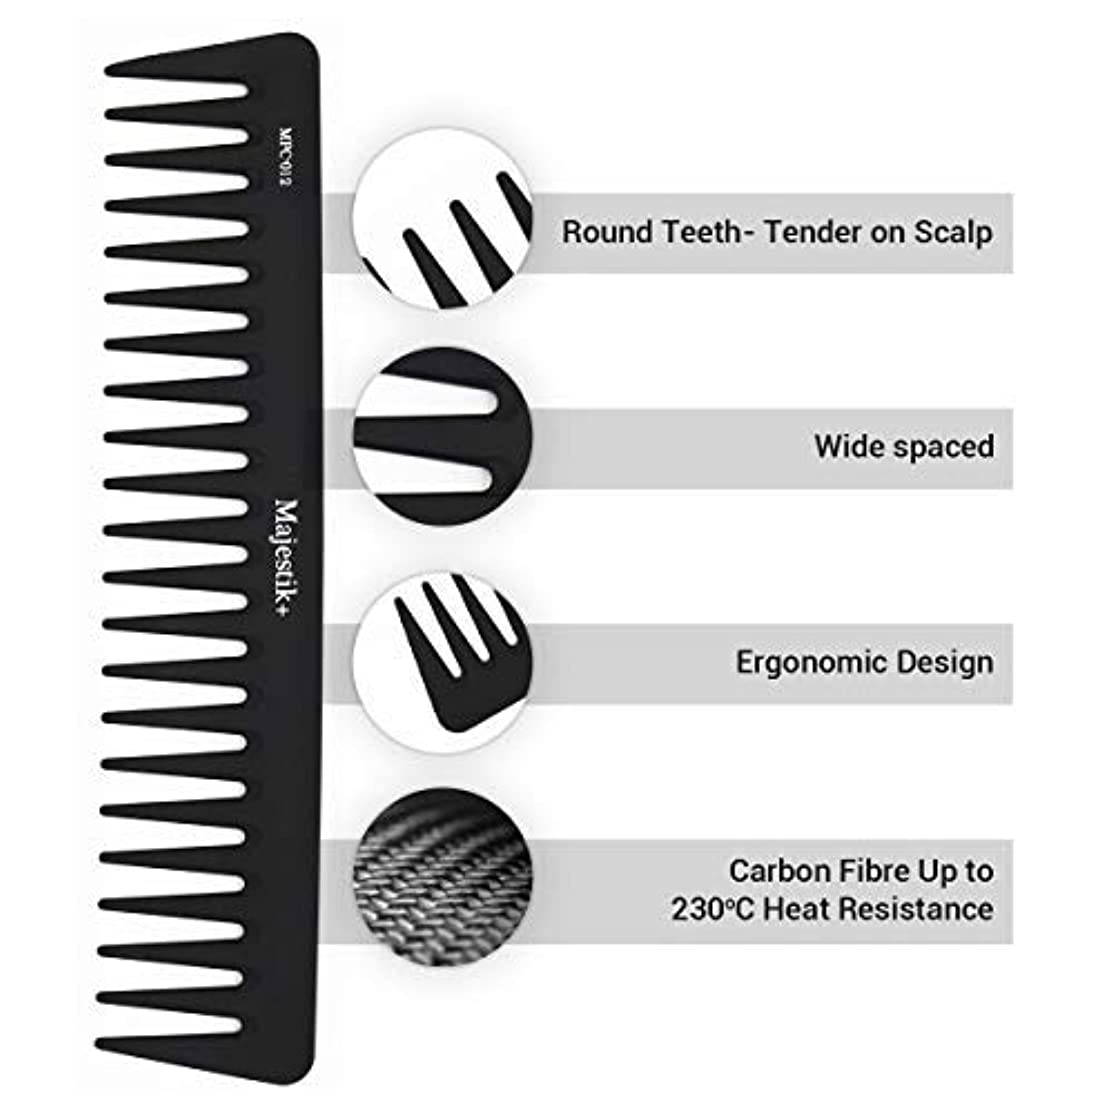 やろうなにキモいWide Tooth Comb- a Professional Carbon Fibre Hair Comb by Majestik+, Anti-Static, Strength & Durability, in Black...